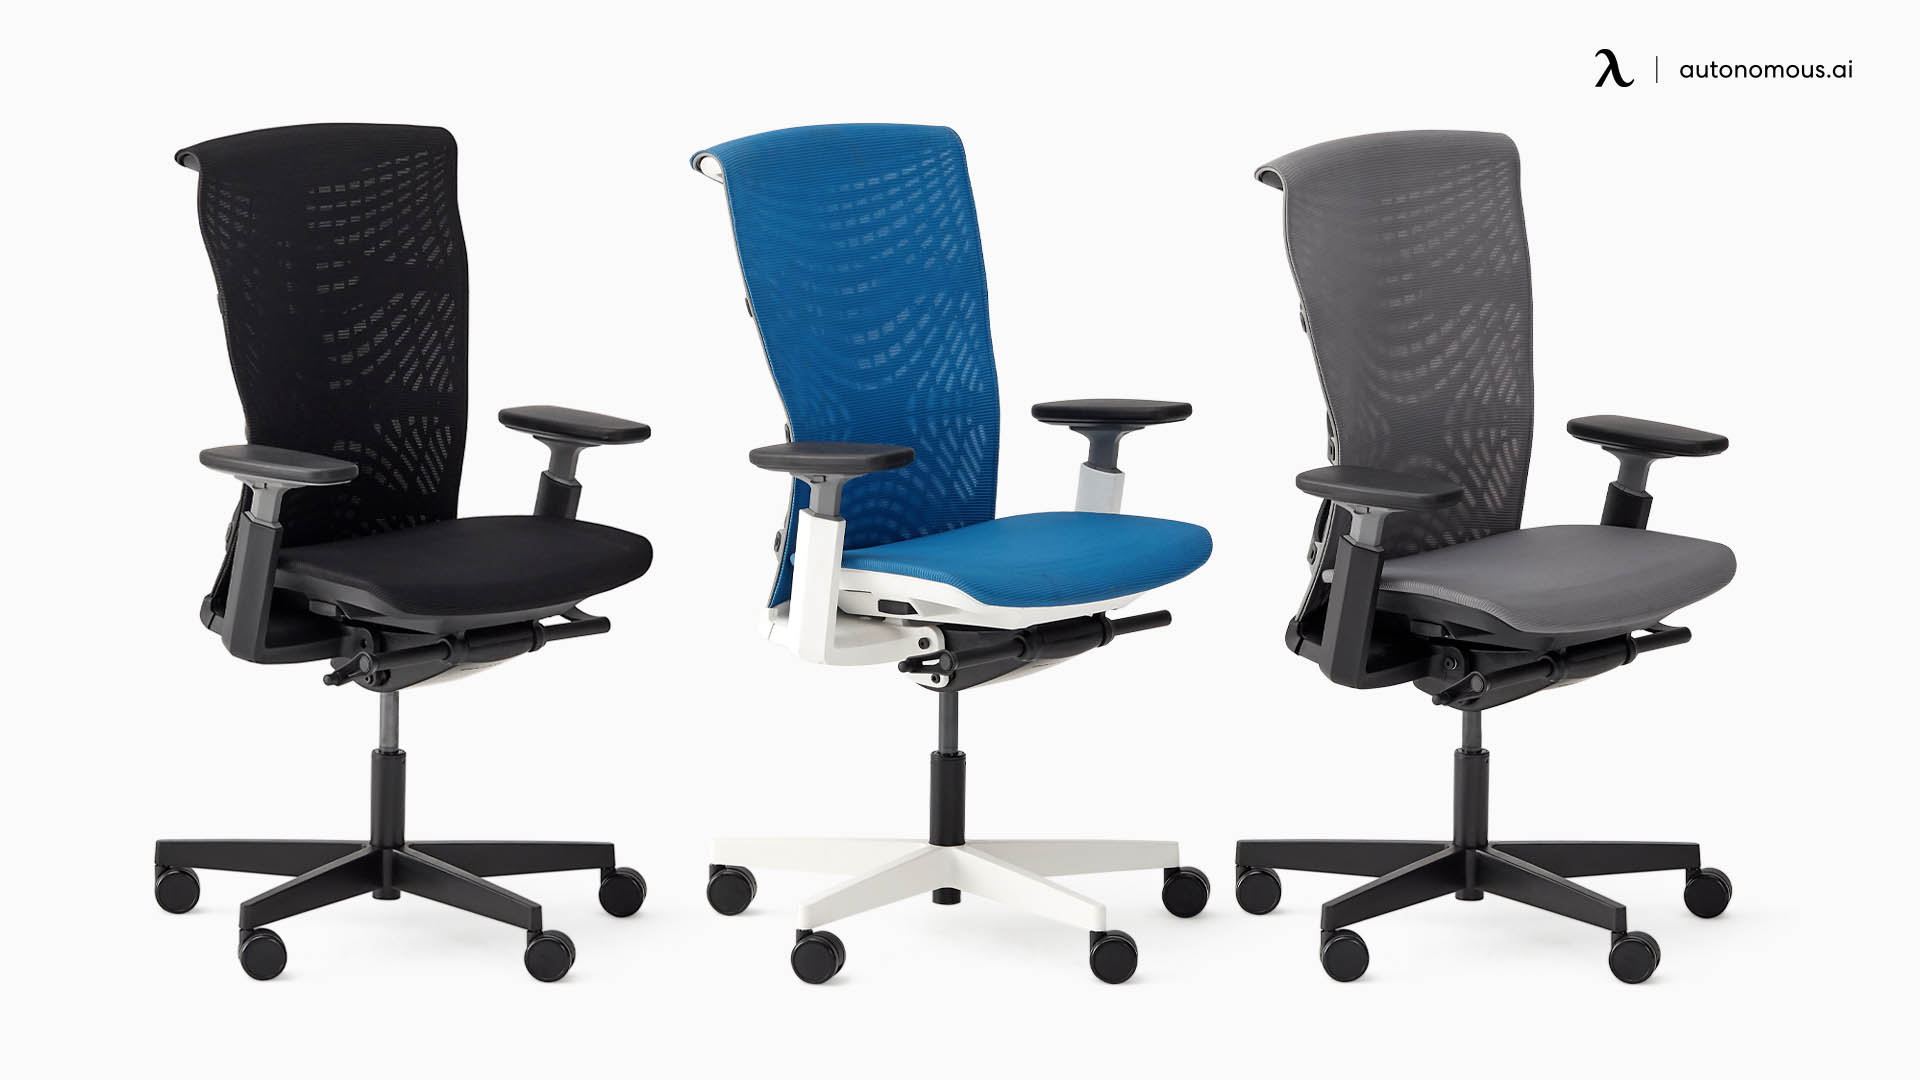 Top 5 Conference Room Chairs for Office in 2021